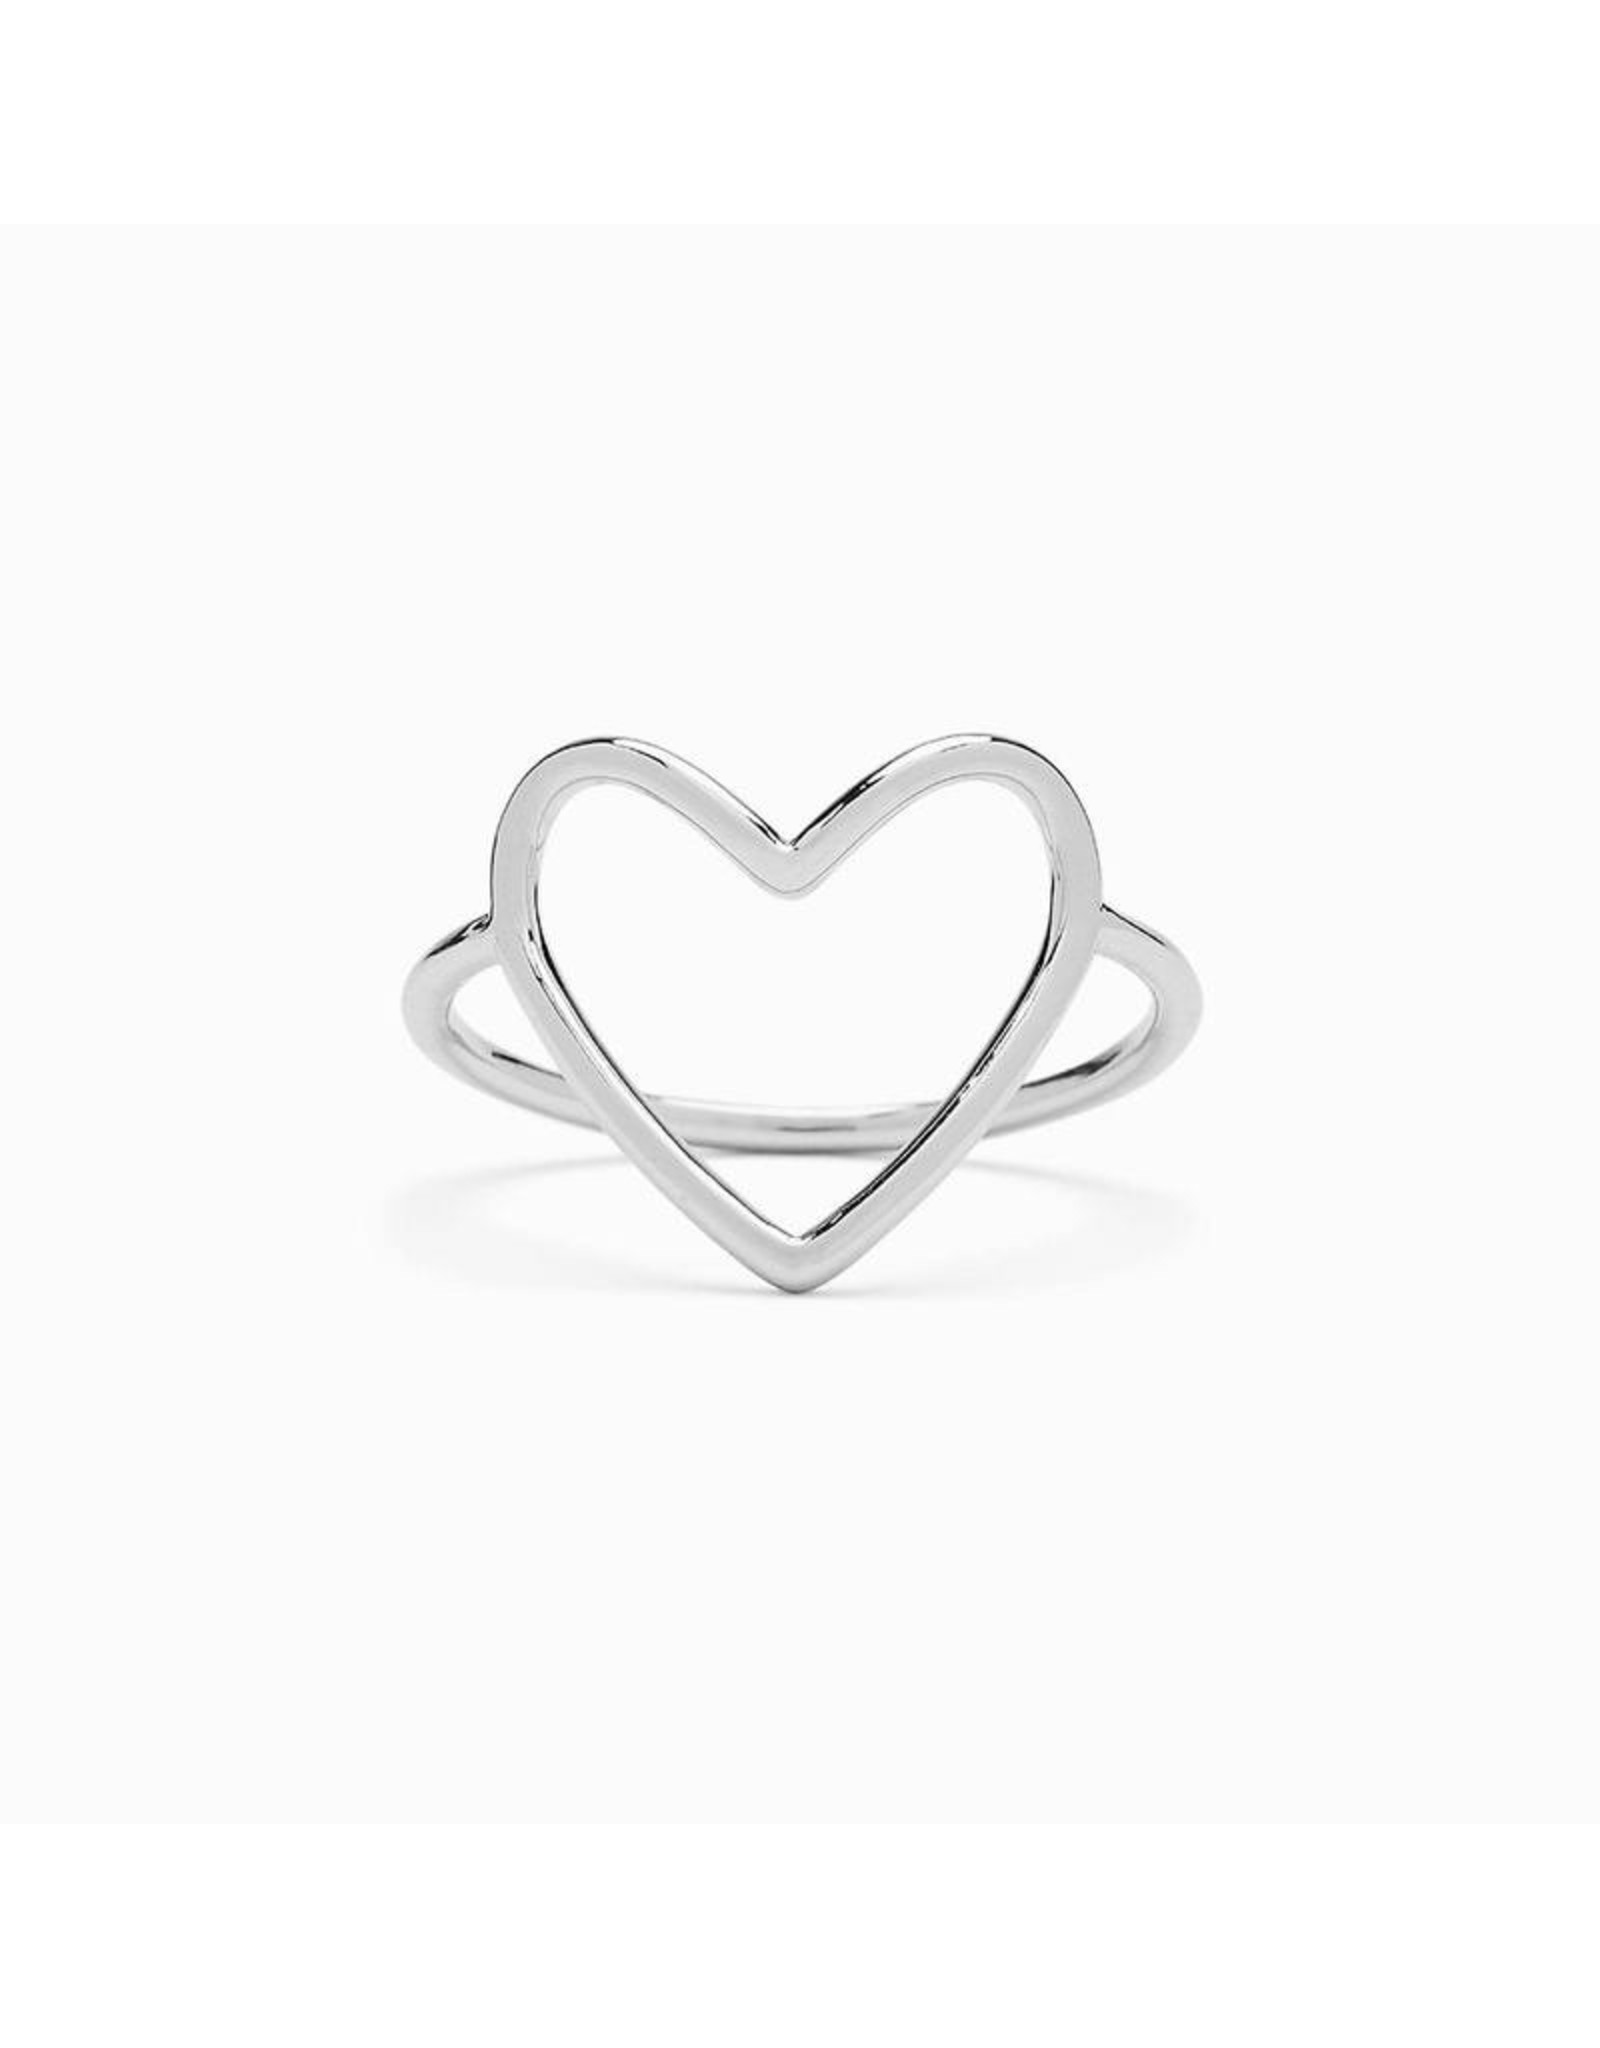 Pura Vida Big Heart Band Ring, Silver